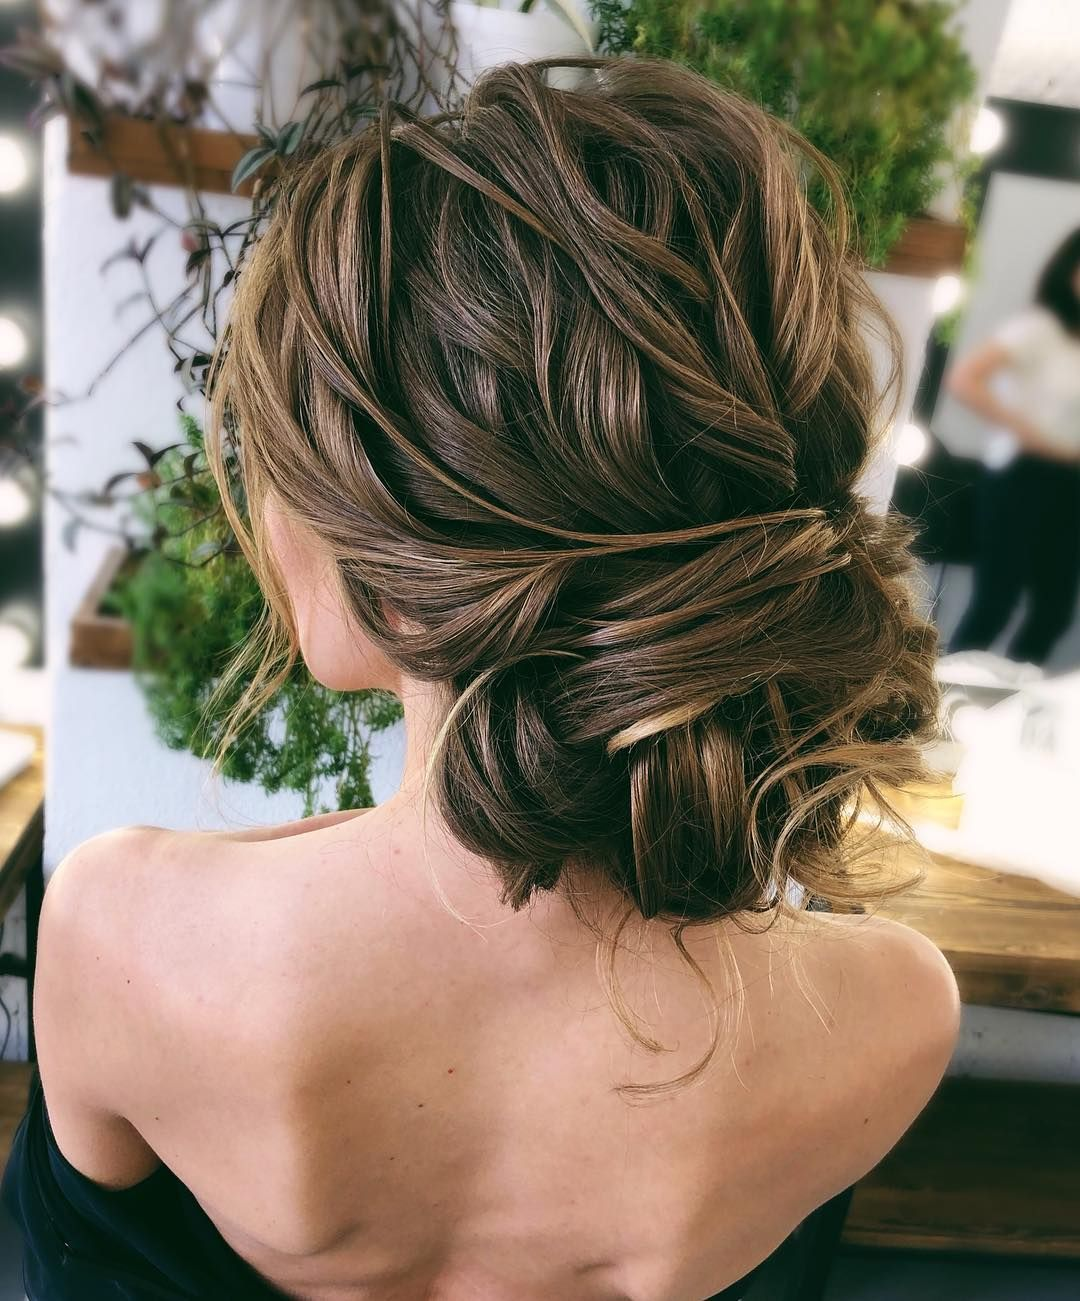 Gorgeous Wedding Hairstyles: 75 Drop-Dead Gorgeous Wedding Hairstyles For A Romantic